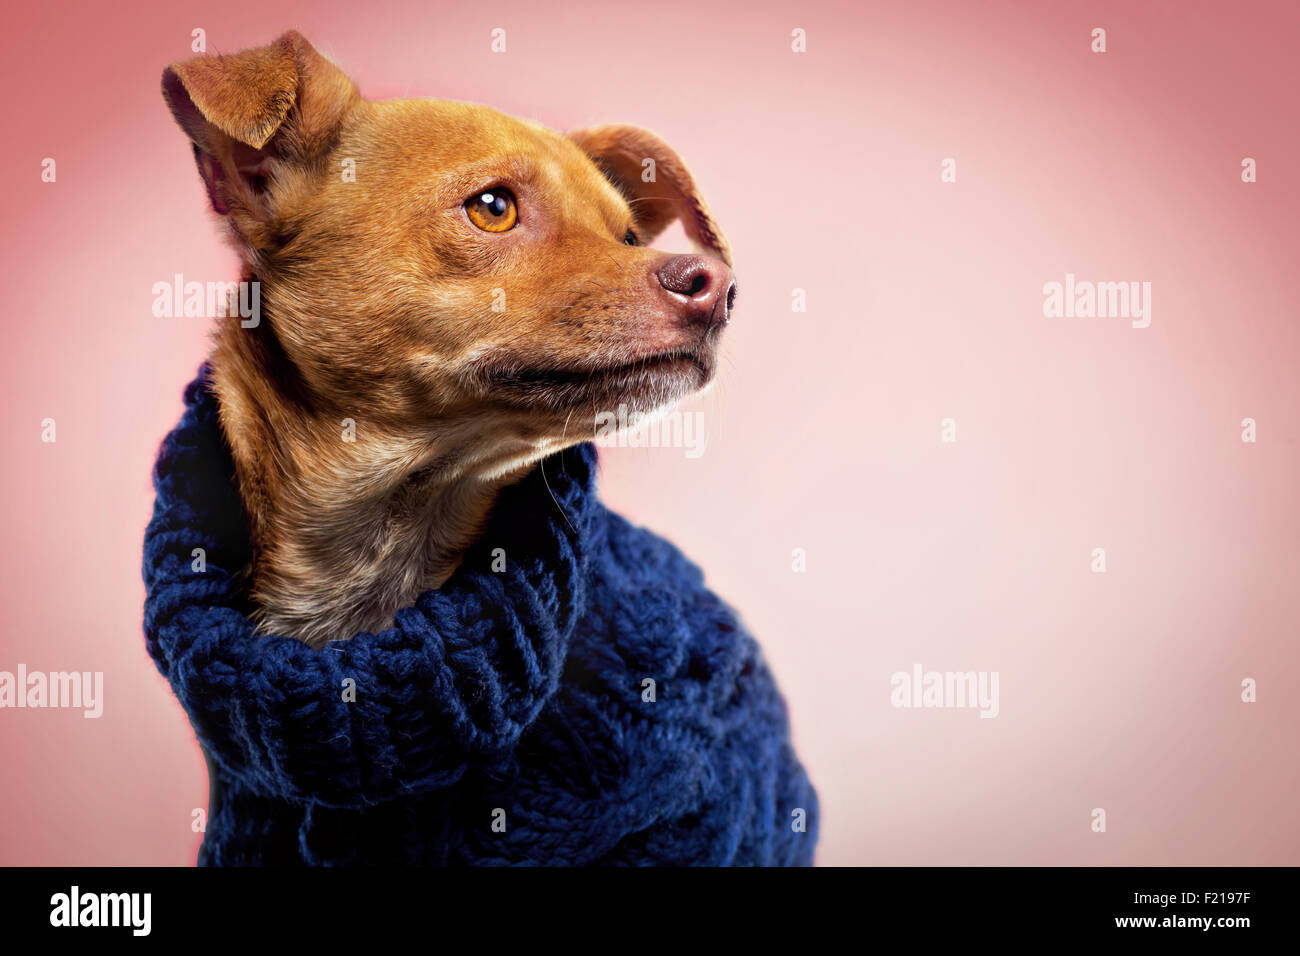 Ginger chihuahua dog in wool sweater on studio backdrop. Stock Photo